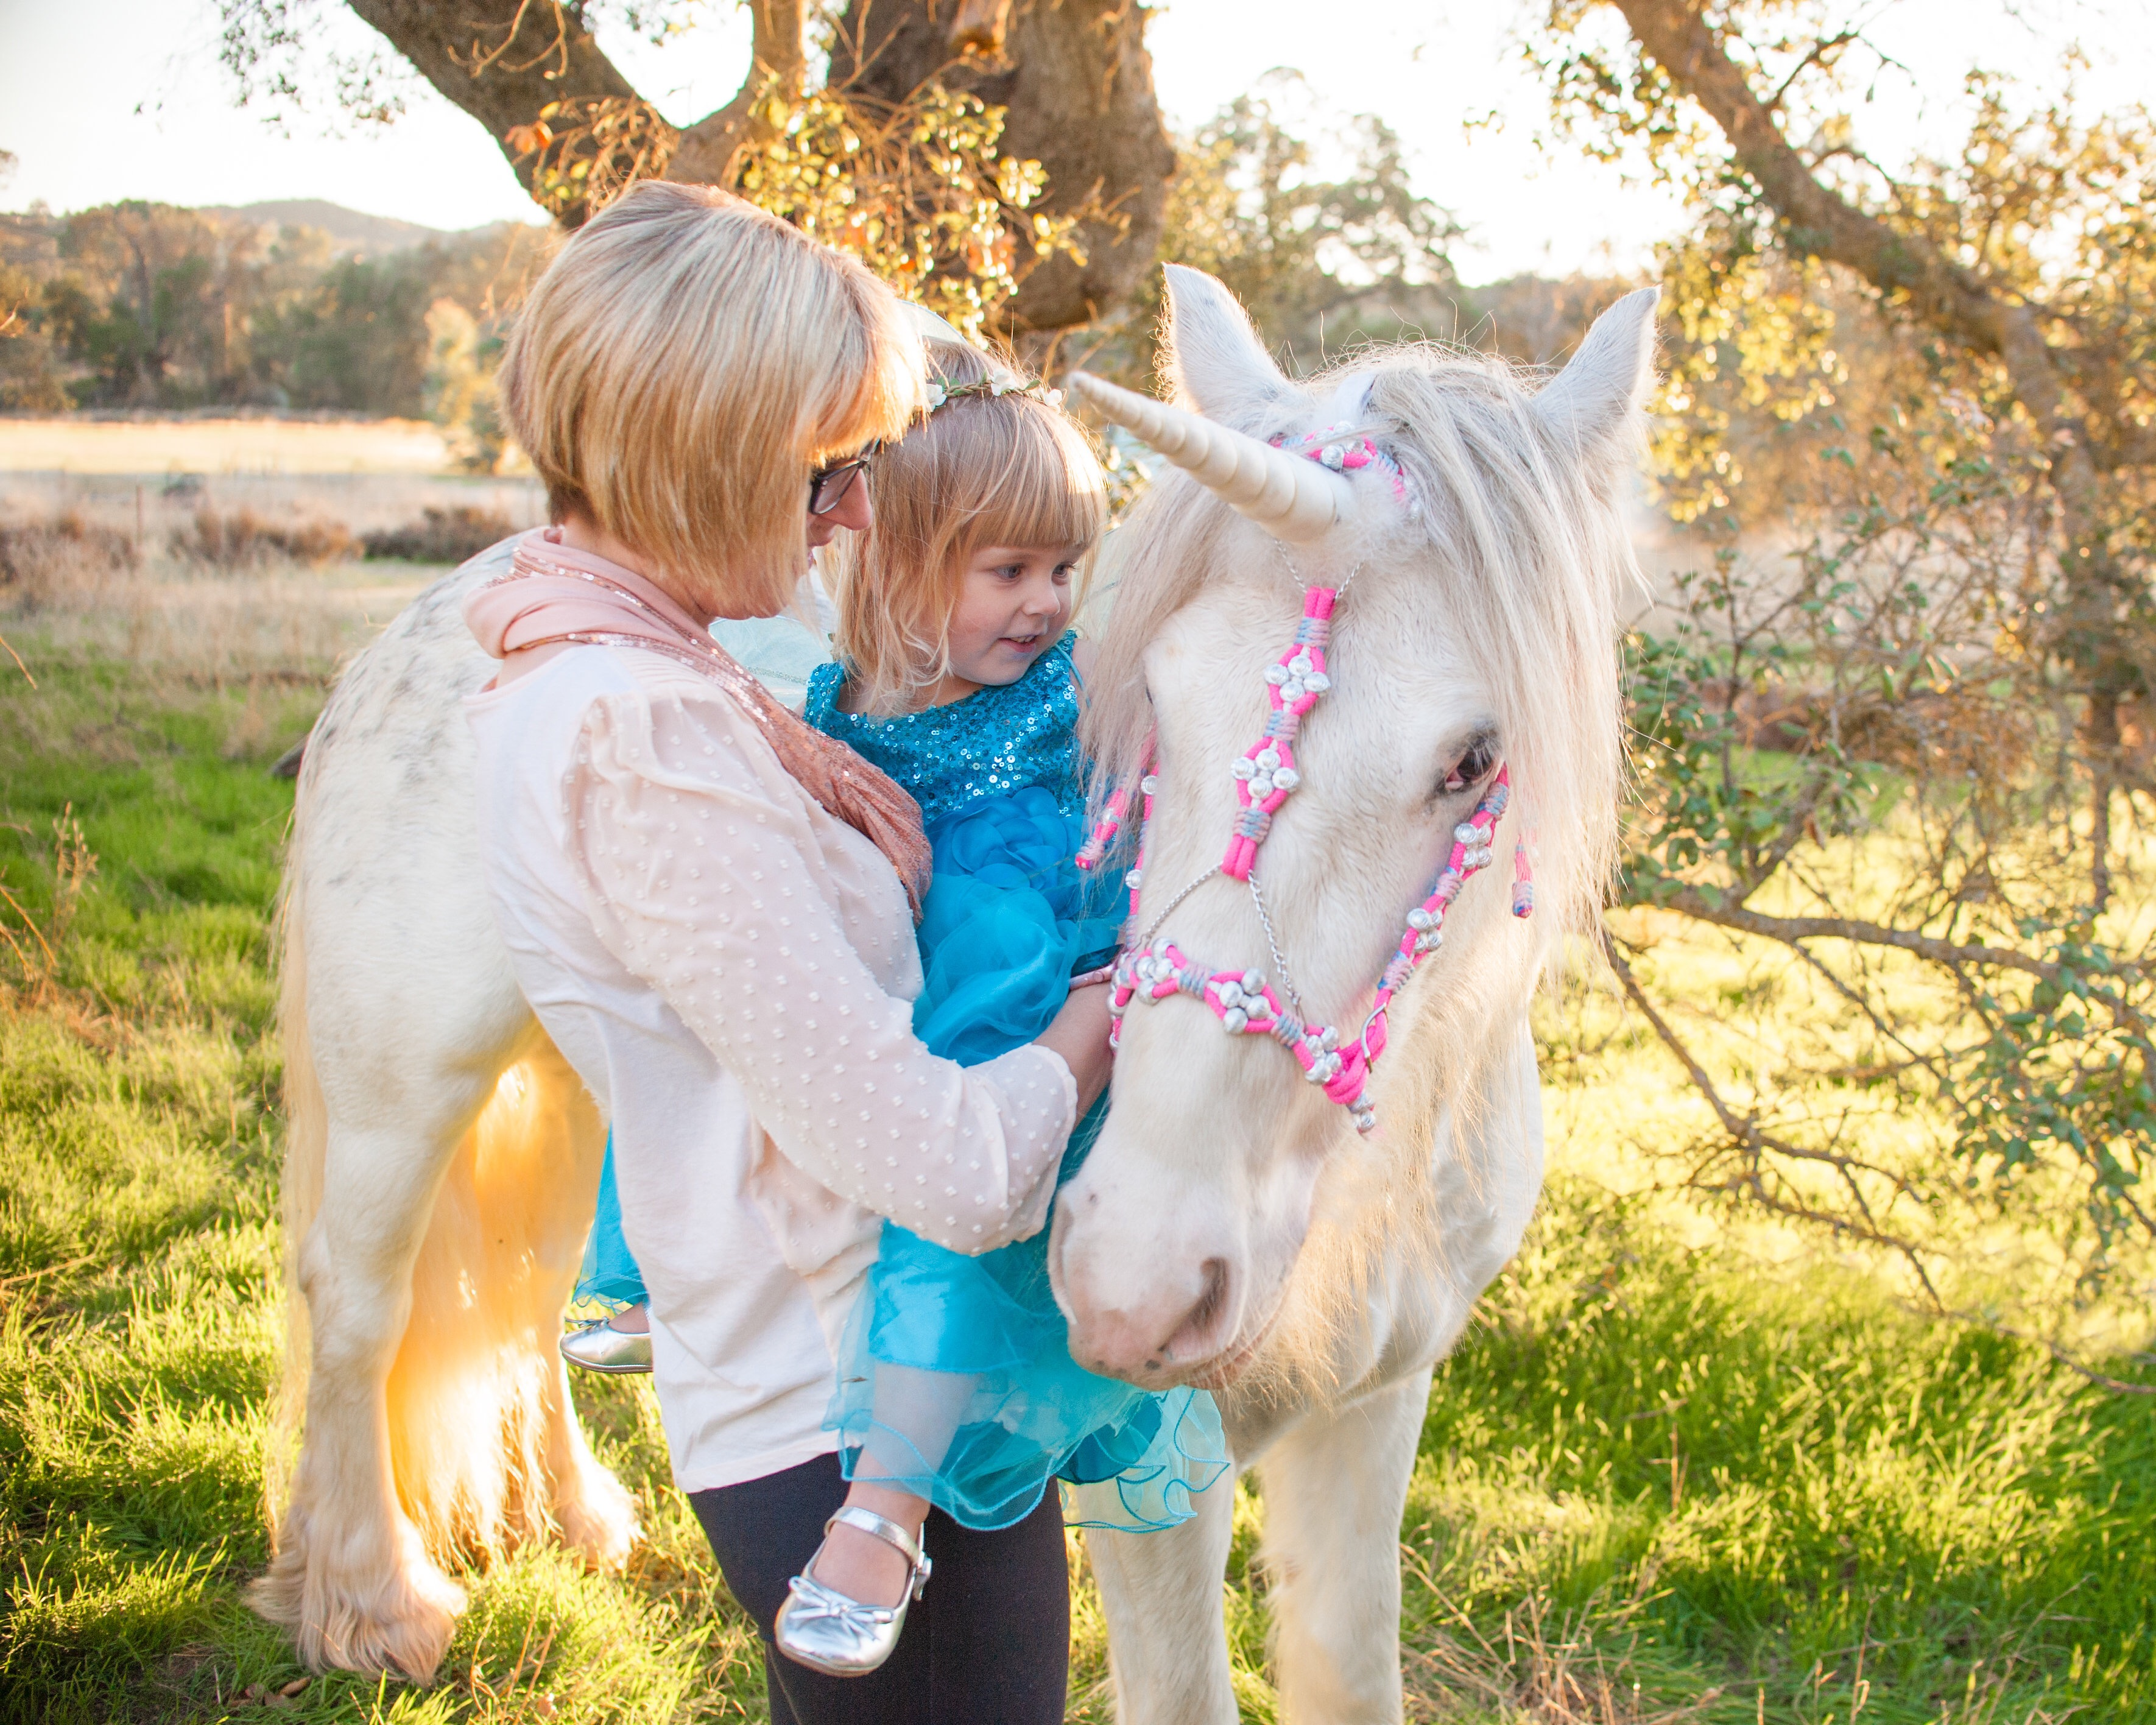 Mother and daughter stroke a unicorn's flowing white mane in Creston, California.